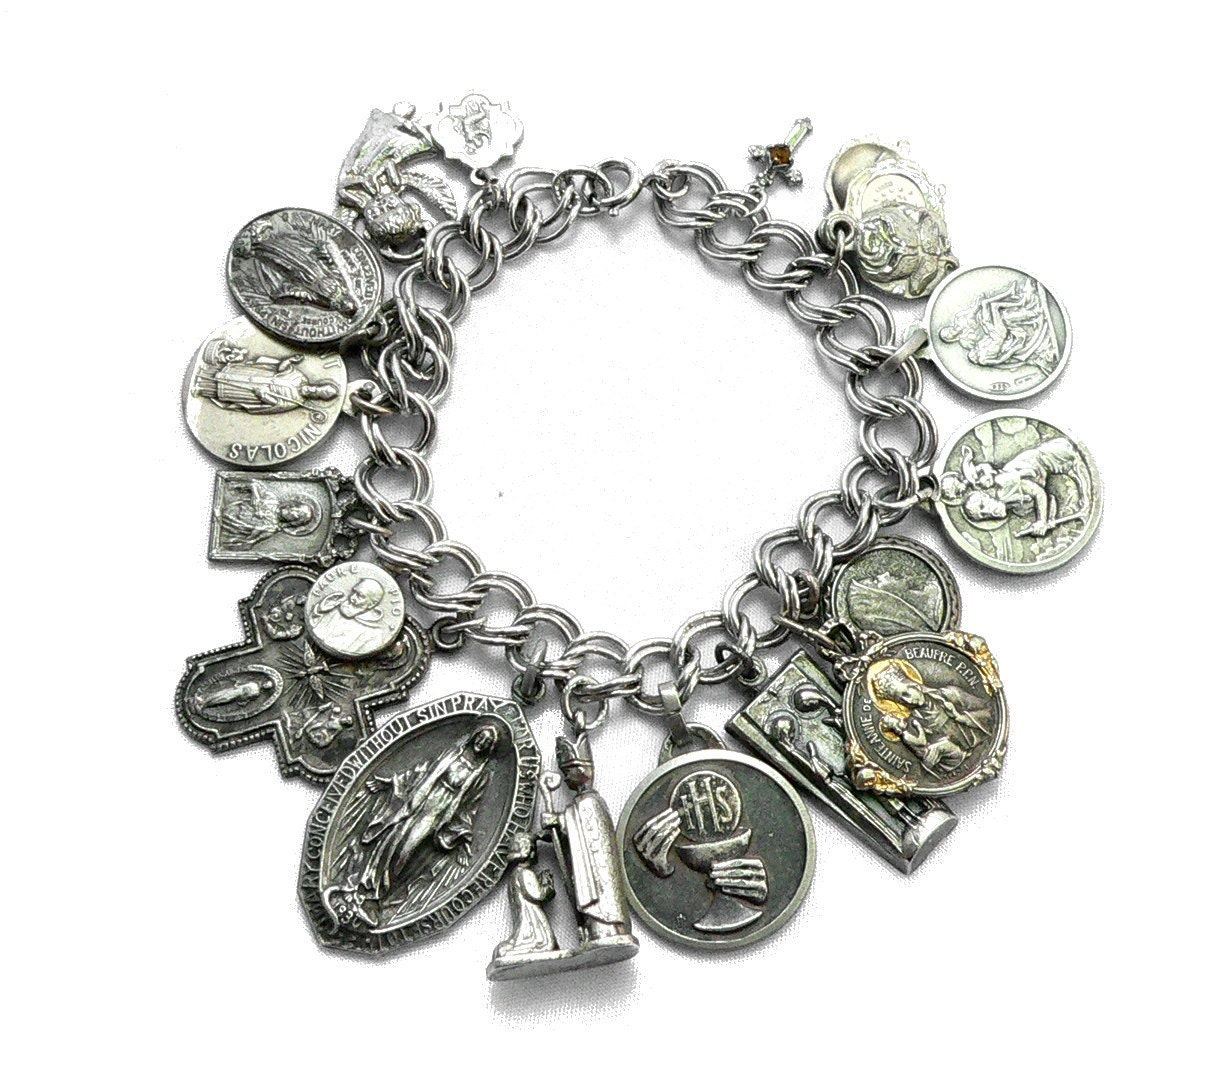 Antique Gold Charm Bracelet: Religious Medals Charm Bracelet Sterling Silver Antique